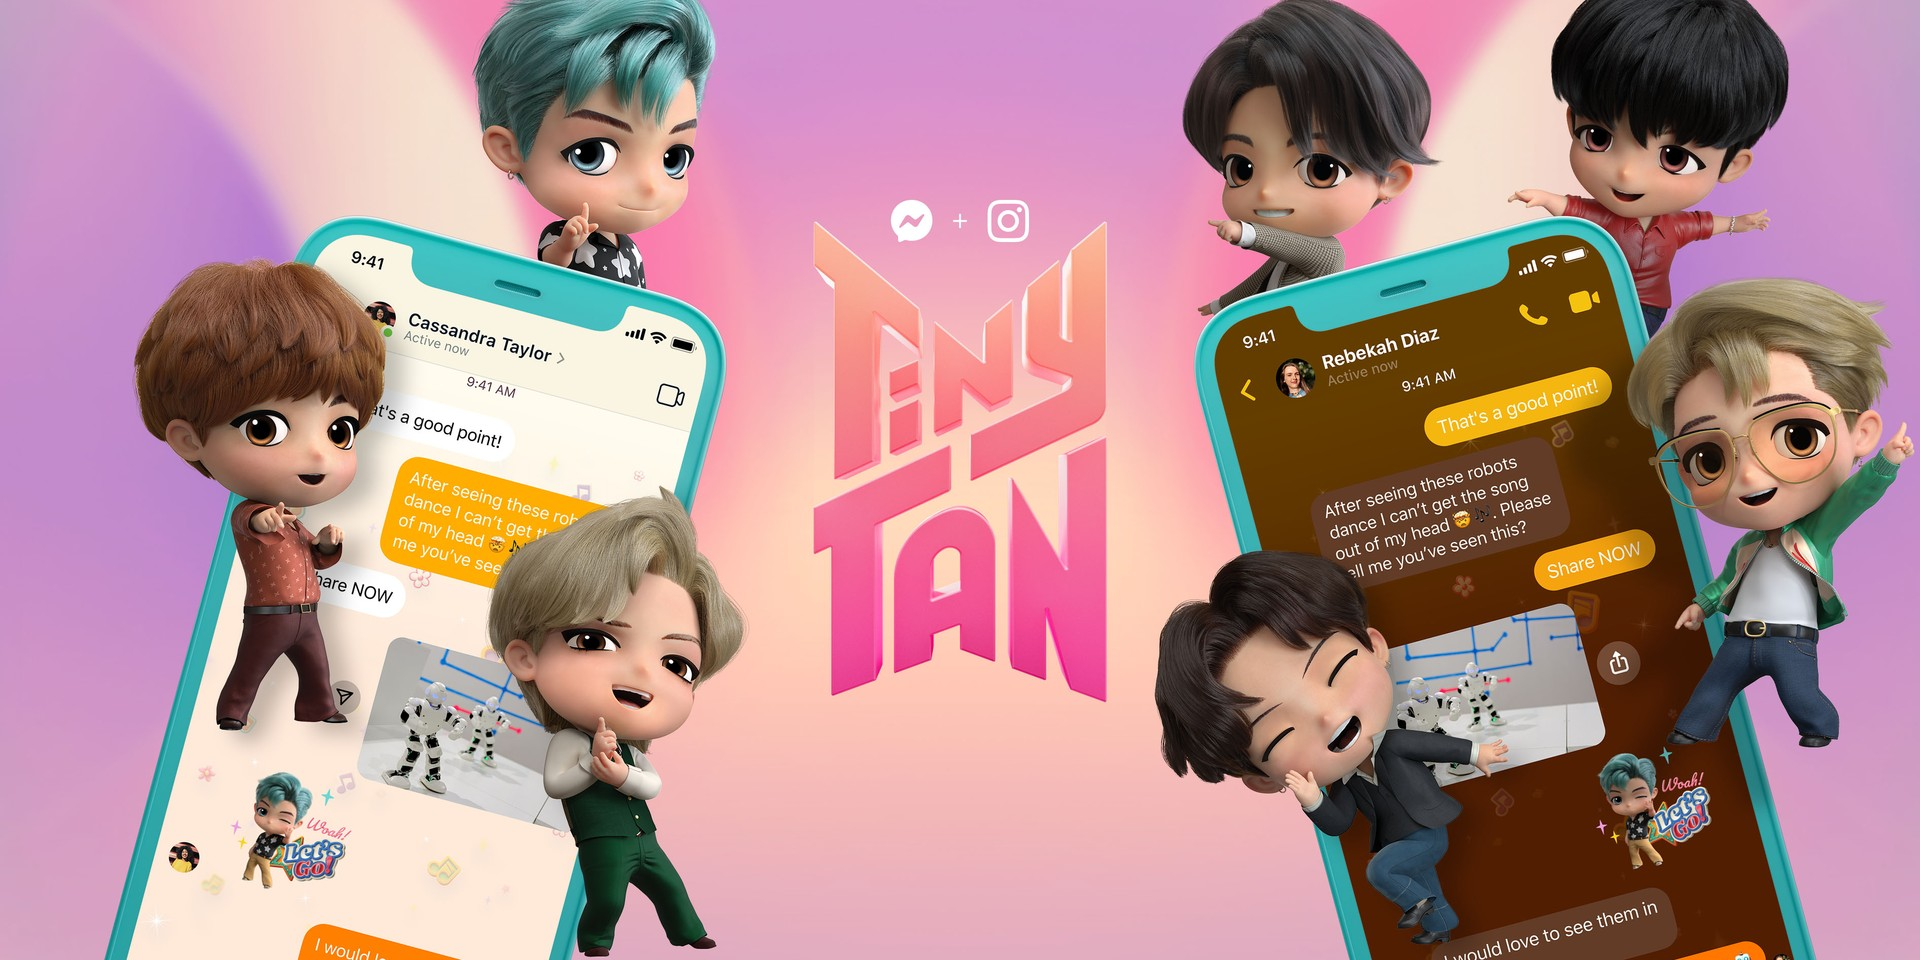 BTS' TinyTAN roll out new 'Dynamite' chat experience on Messenger and Instagram